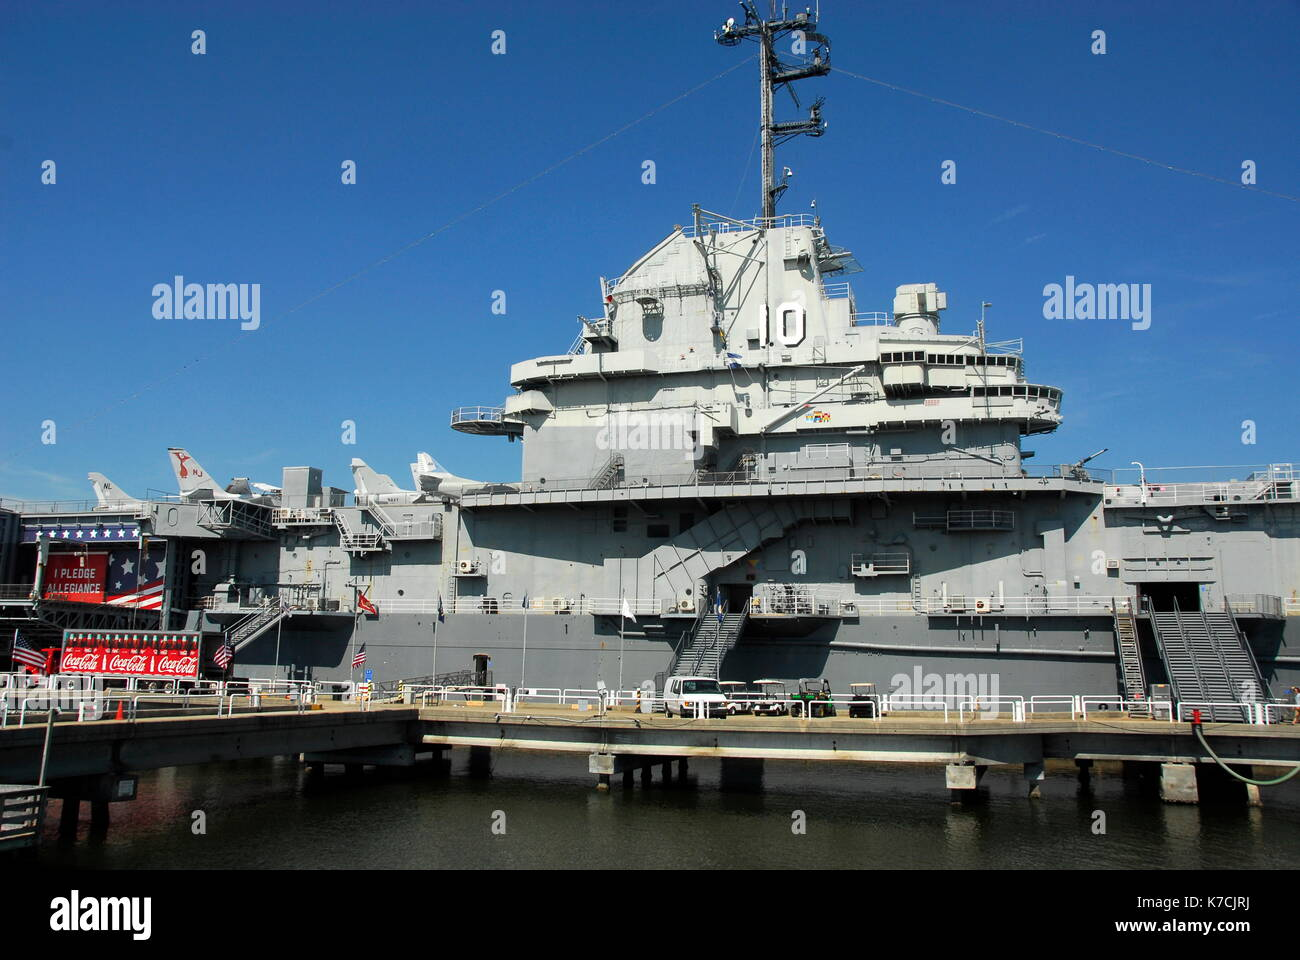 USS Yorktown is a US Navy aircraft carrier and is a National Historic landmark as a museum ship at Patriots Point, Mount Pleasant, South Carolina - Stock Image